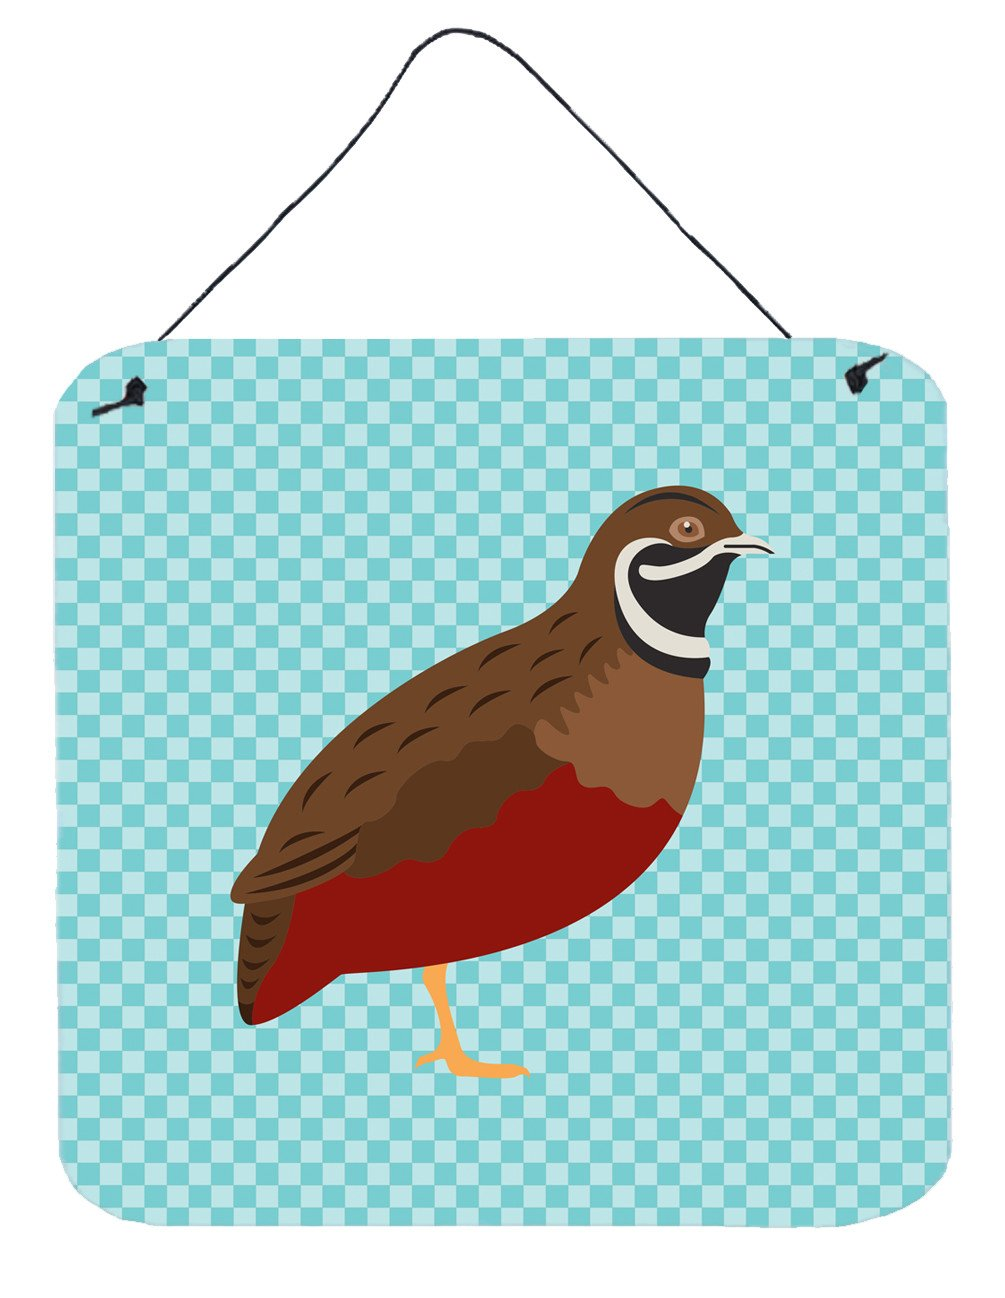 Chinese Painted or King Quail Blue Check Wall or Door Hanging Prints BB8130DS66 by Caroline's Treasures